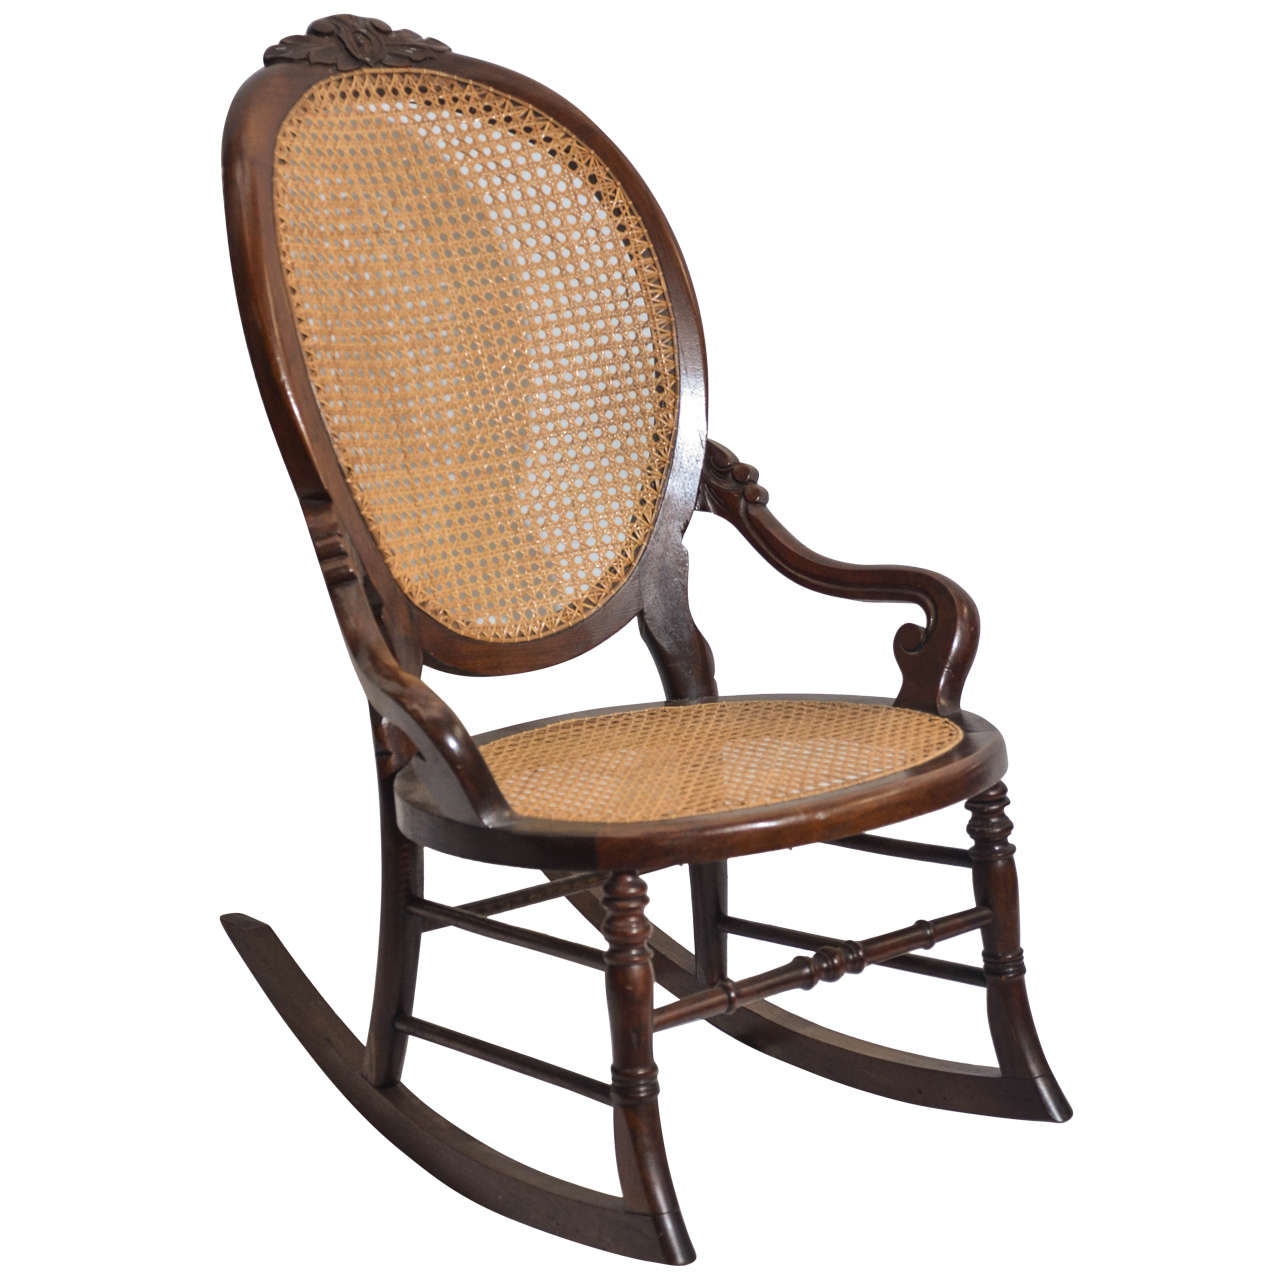 Delicieux Victorian Walnut Ladyu0027s Rocking Chair